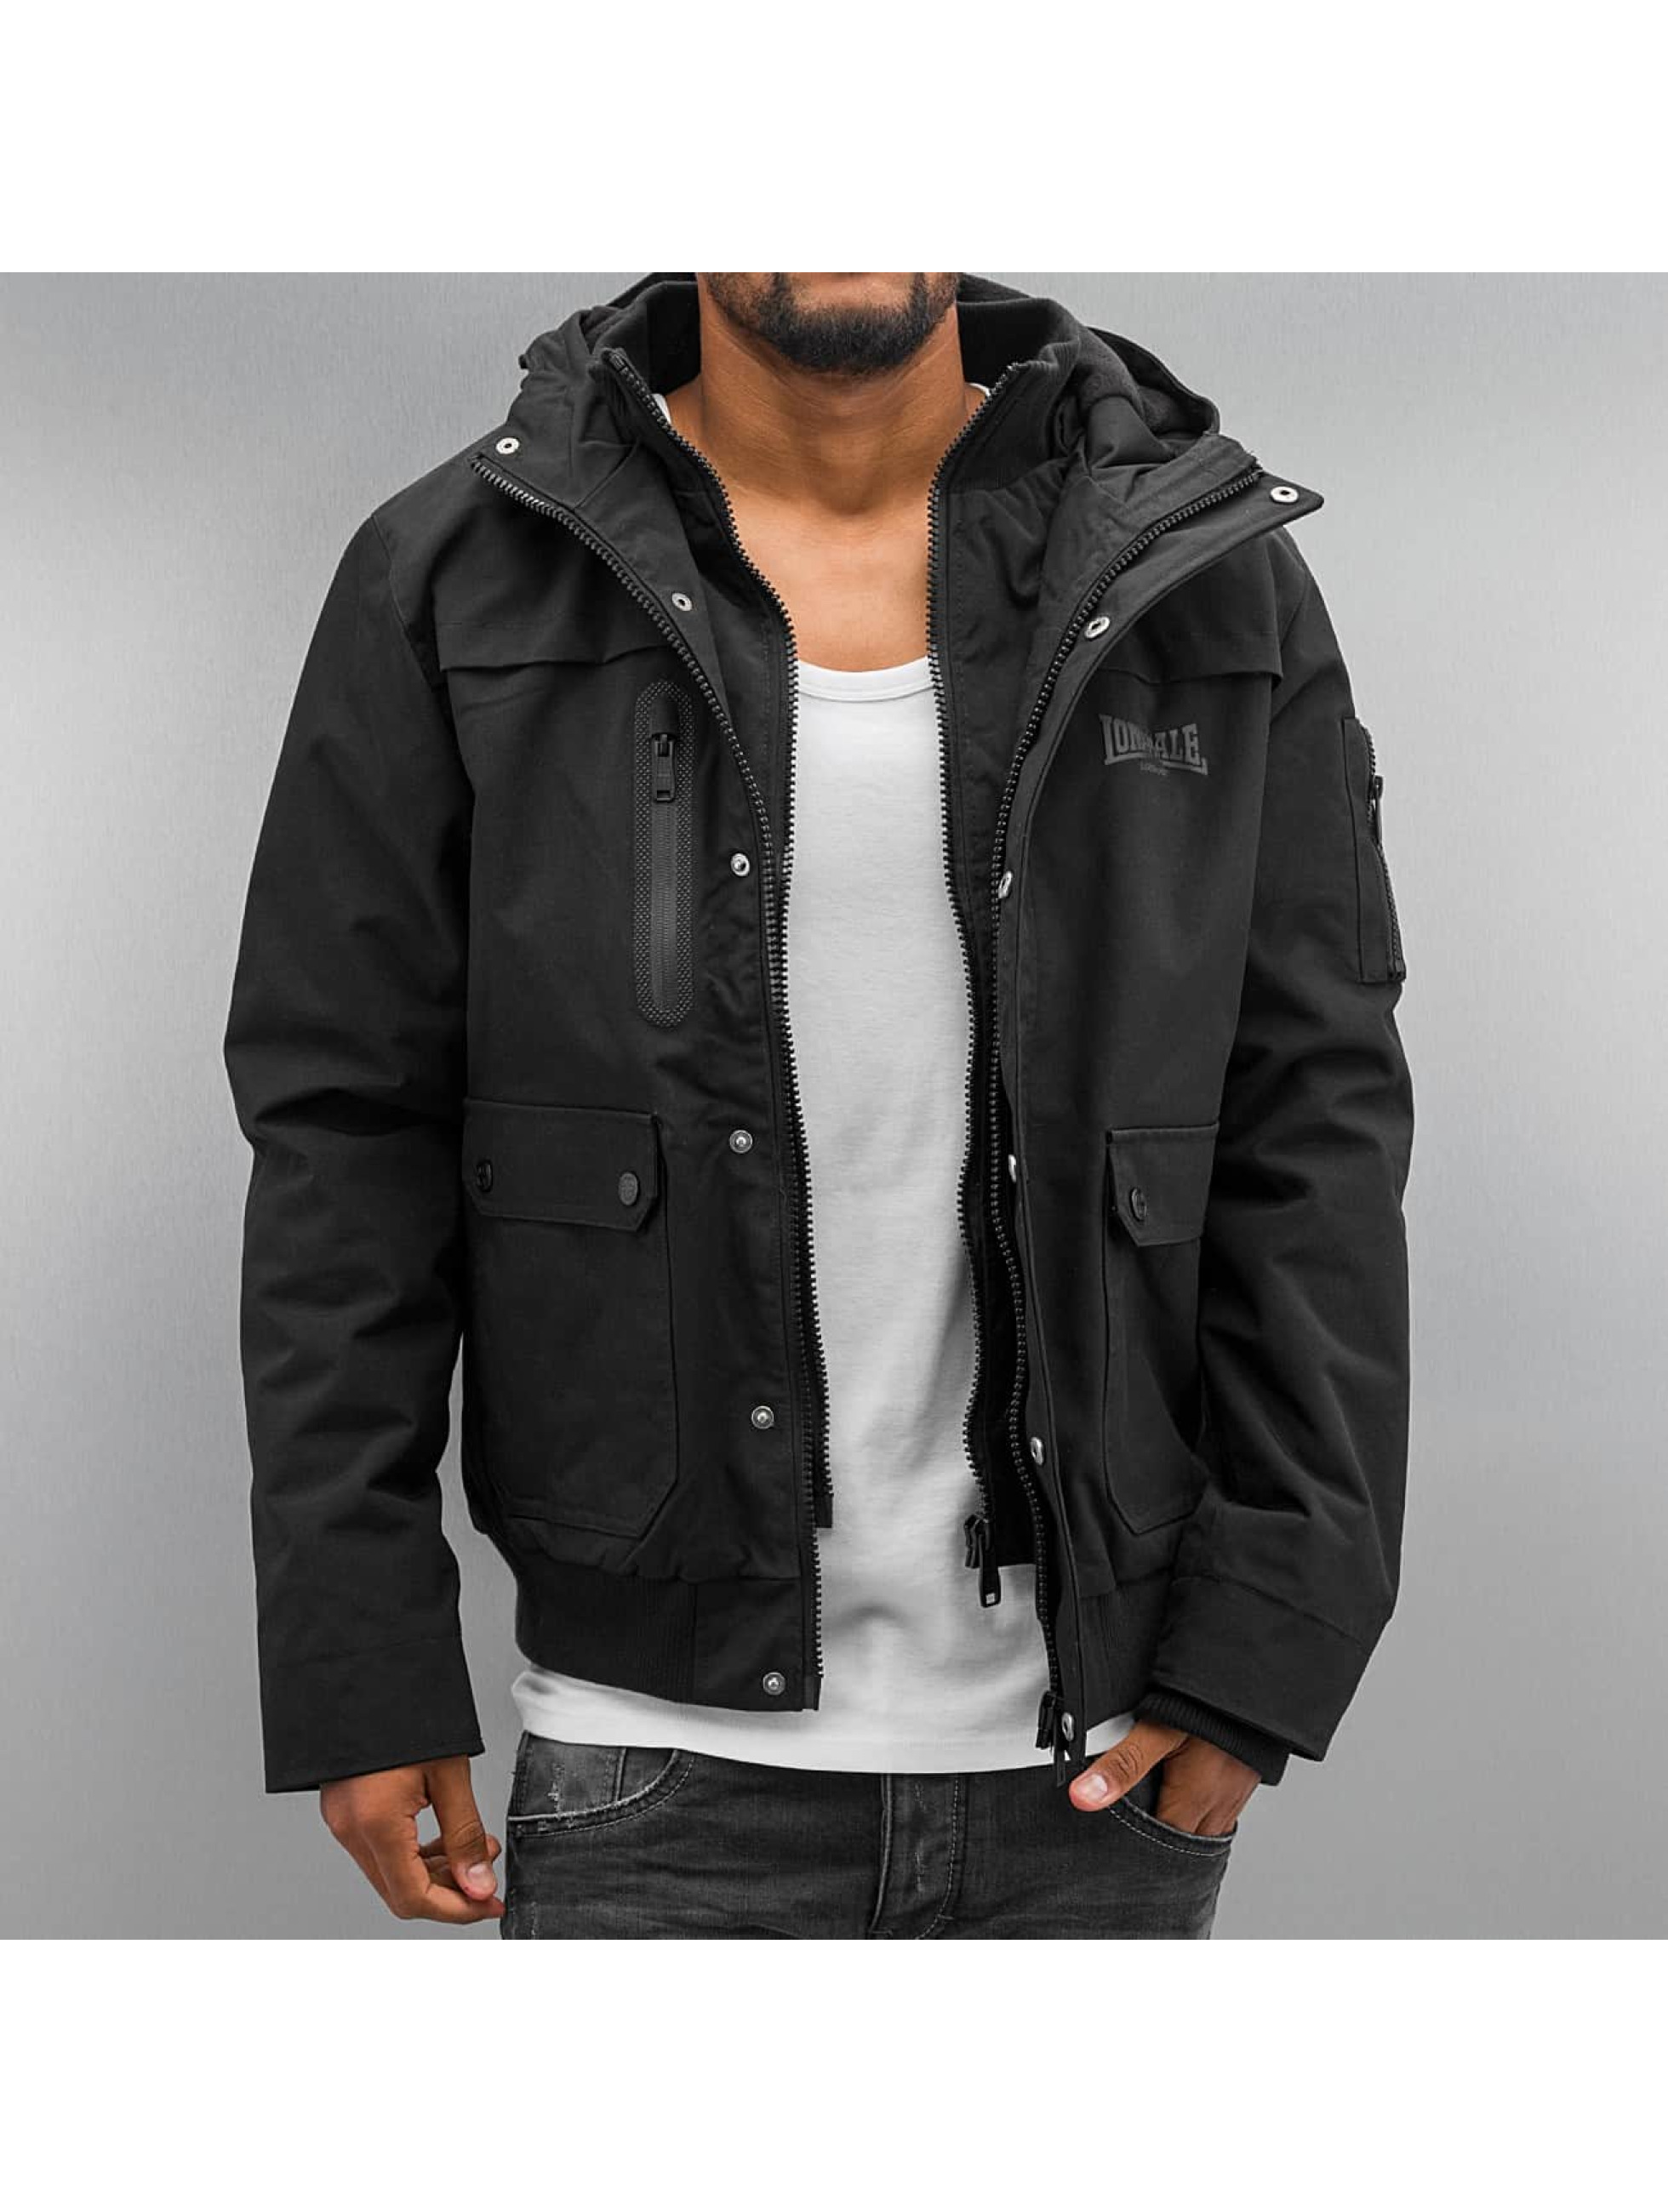 Lonsdale London Hillbrae Winter Jacket Black